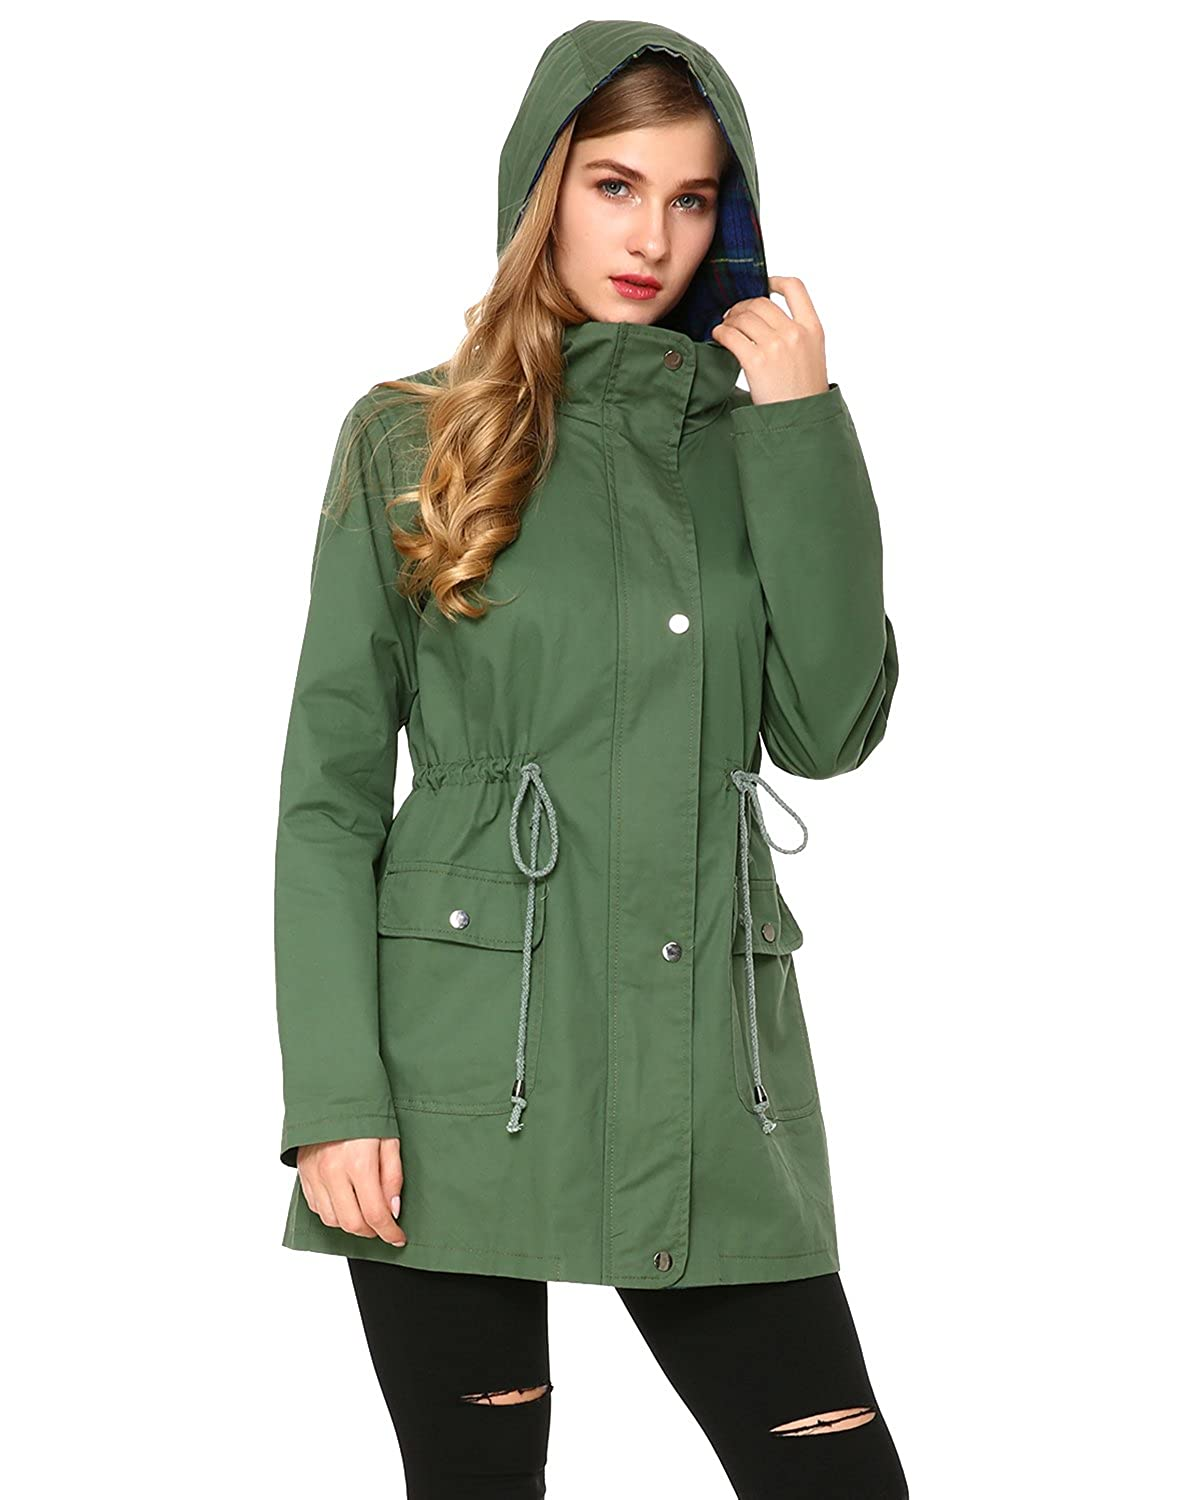 Mixfeer Women's Multifunction Anorak Parka Hoodie Drawstring Jacket with Pockets ZKG9319